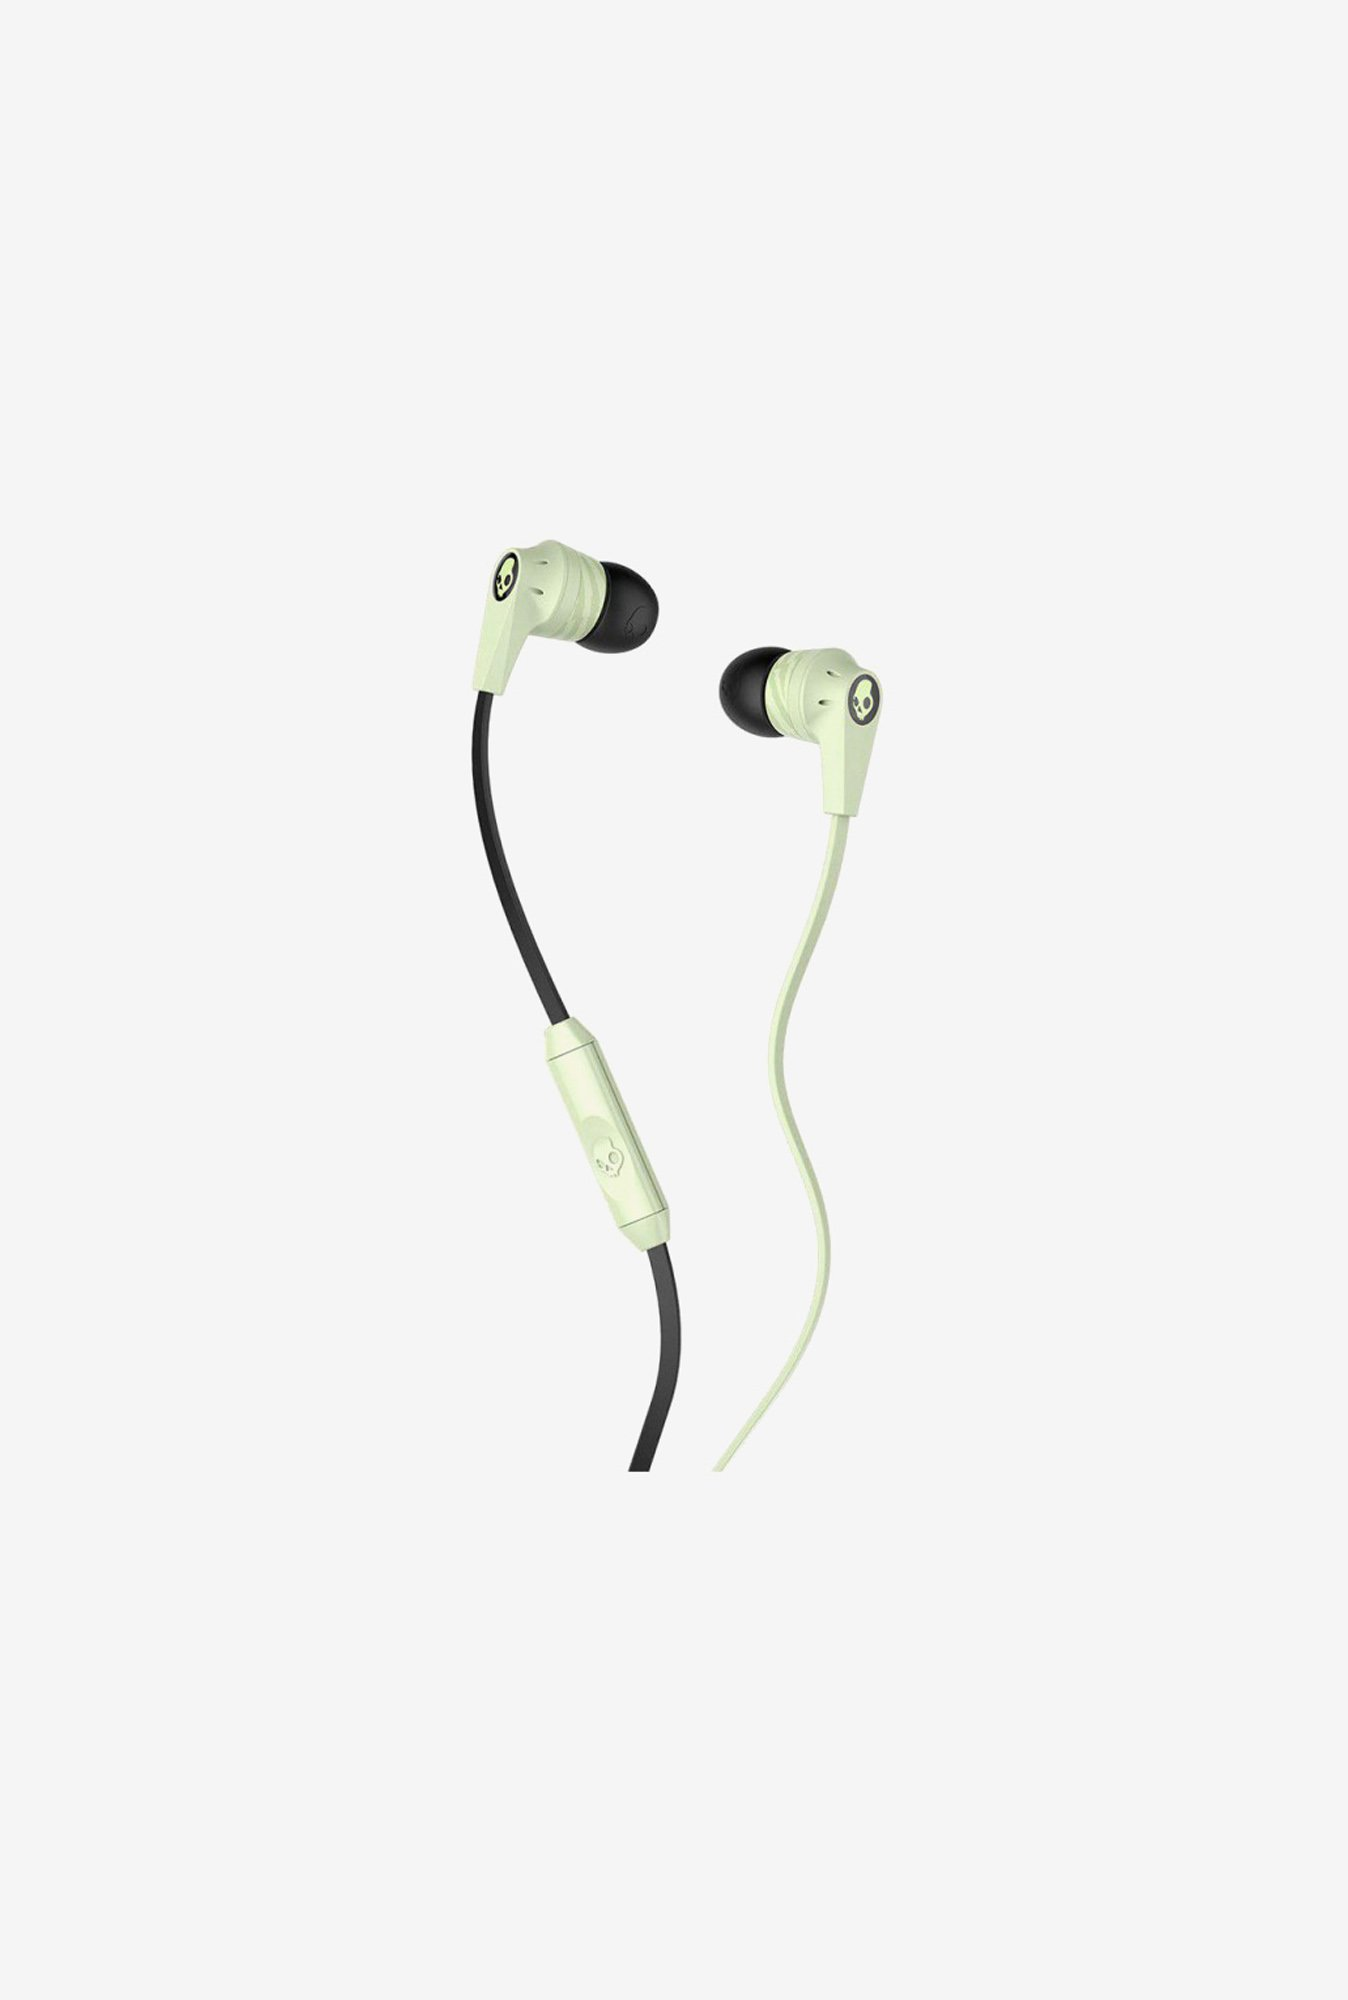 Skullcandy Riot 2.0 Locals S2IKHY-486 Headphone White